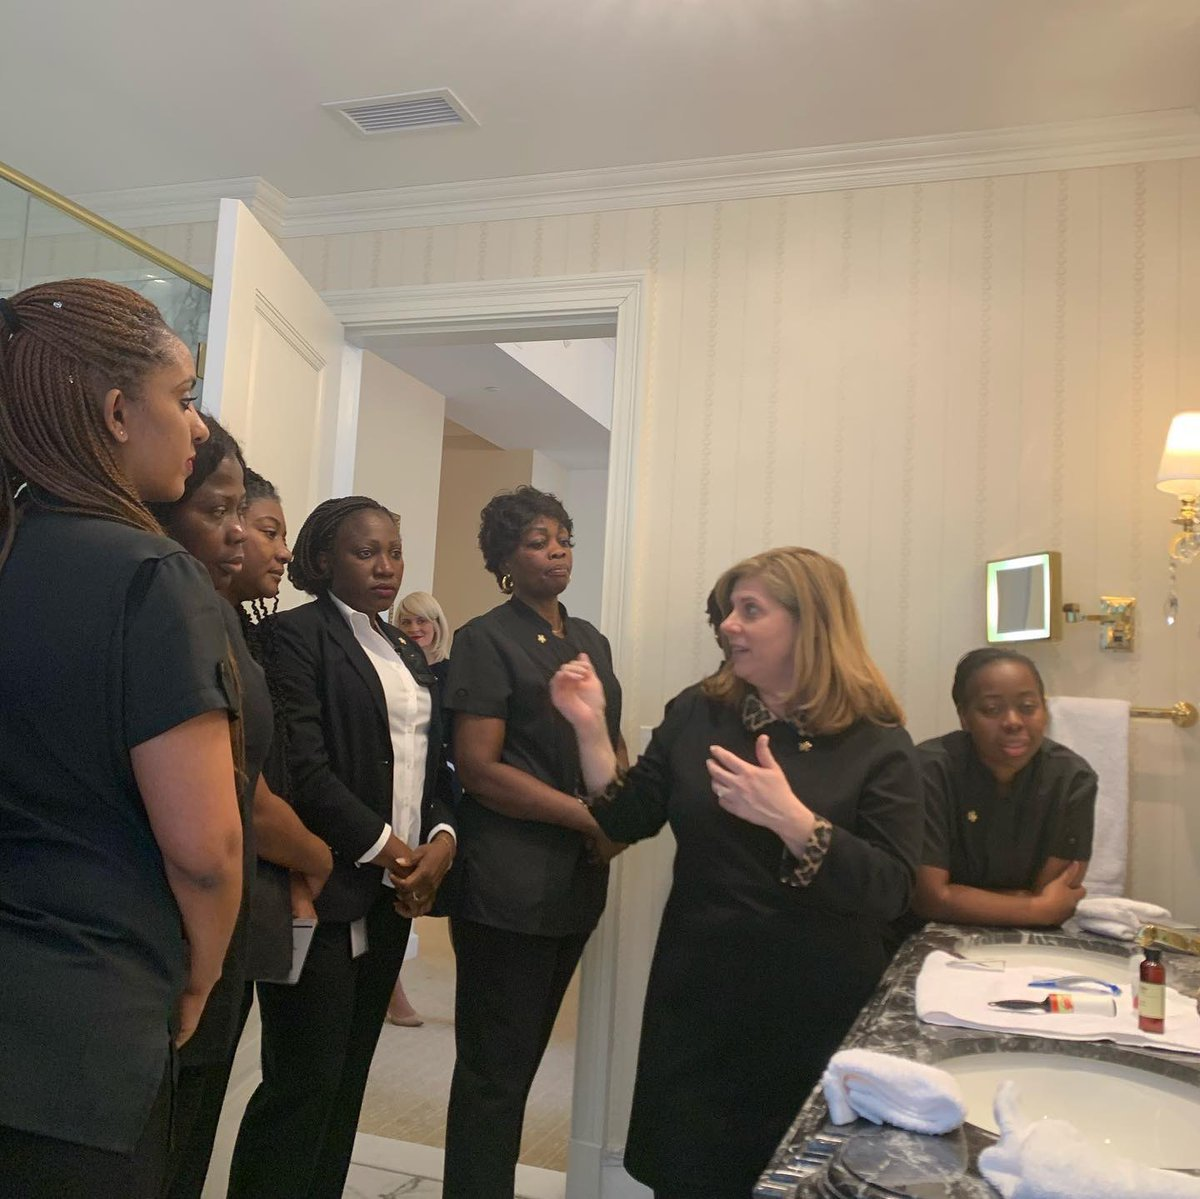 A few more action shots from our @ForbesInspector 5 star training this week..Here are a few shots with our Room Attendants...#bestteam #housekeeping #teamwork #training #success #neversettle #hardwork #WashingtonDC #trump #onlyfivestarhoteldowntowndc #doitbetterthananyoneelse